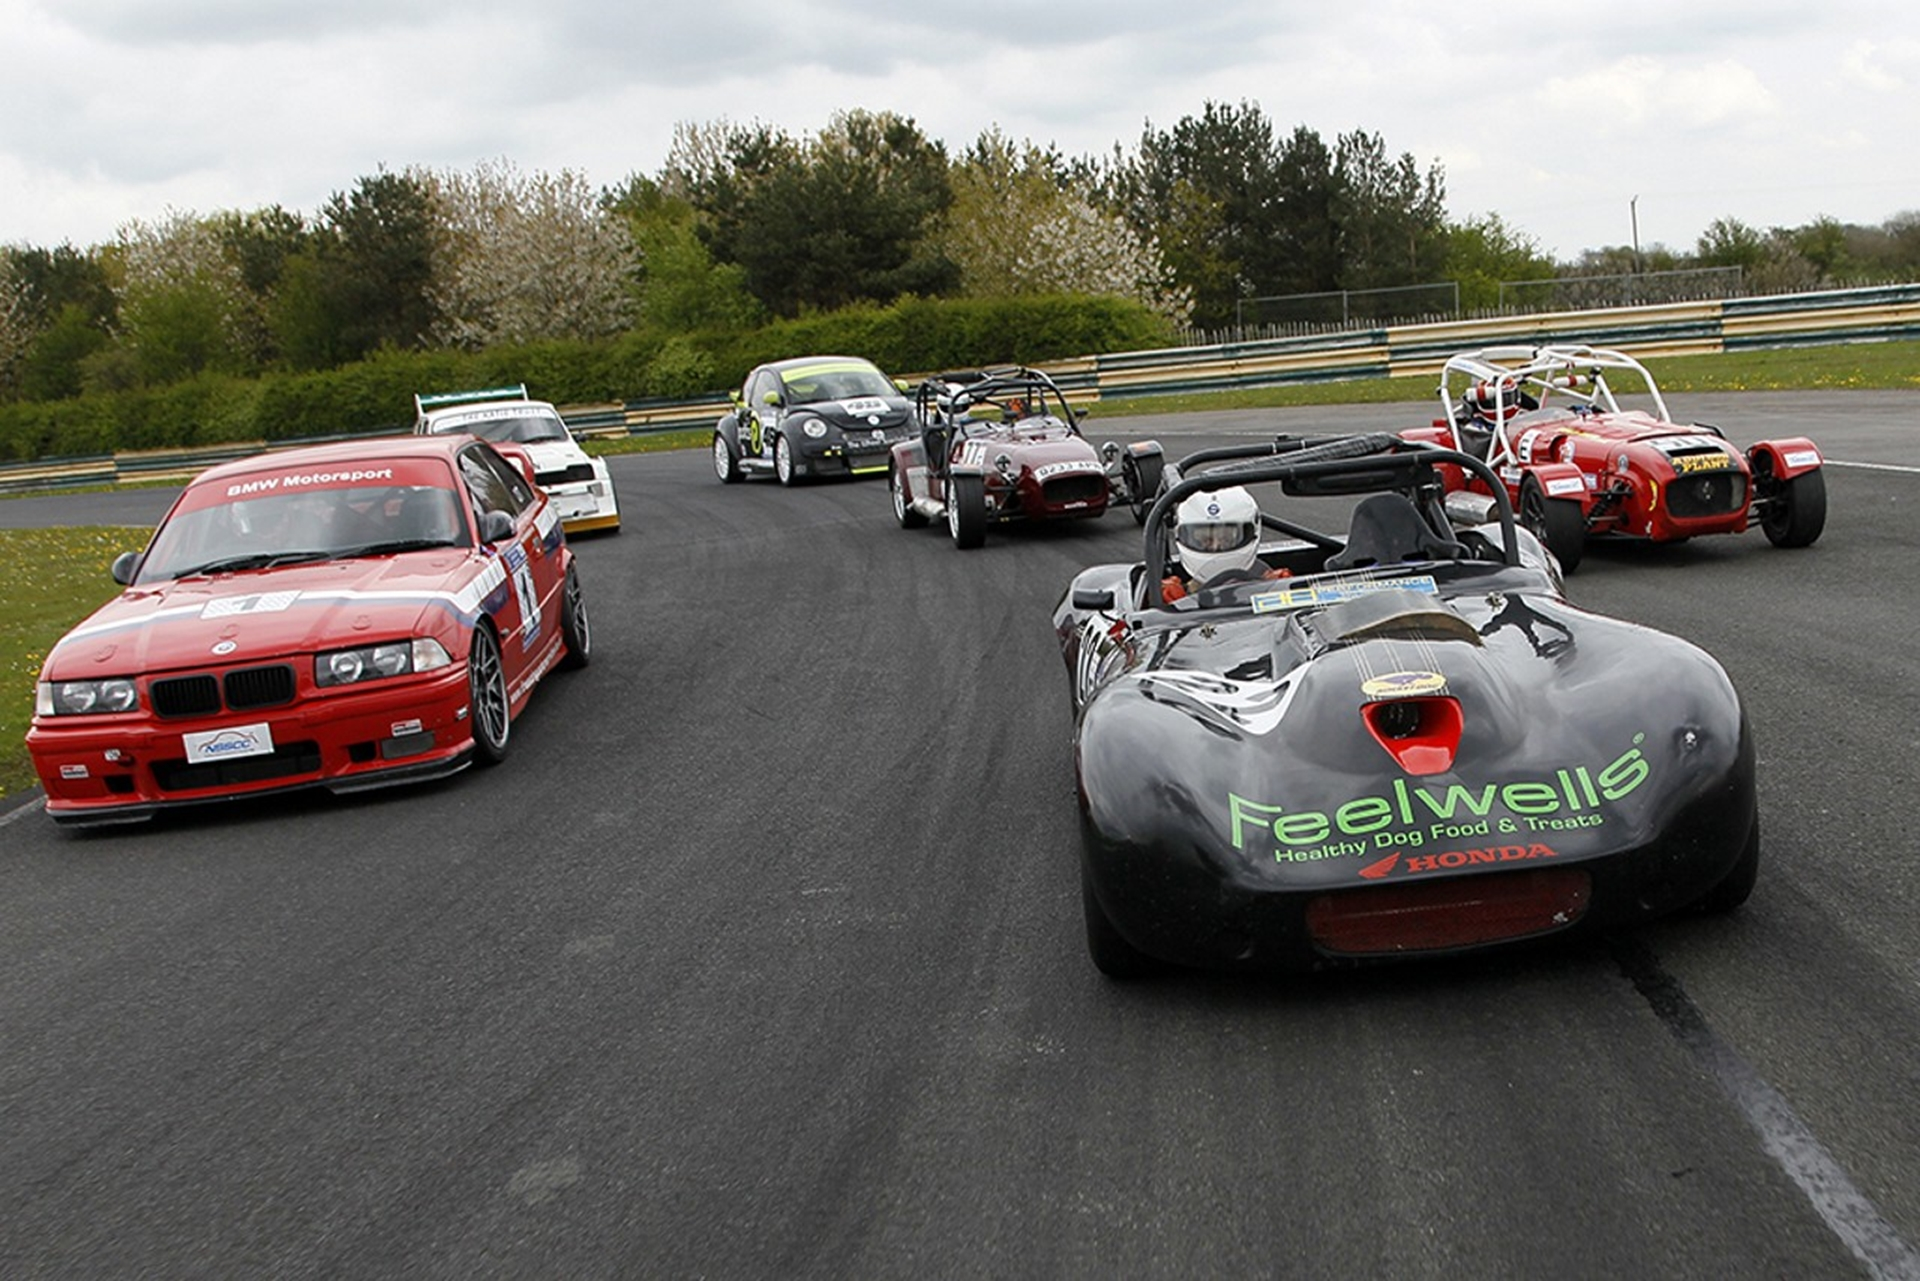 Fast laps for local charity at Croft Circuit